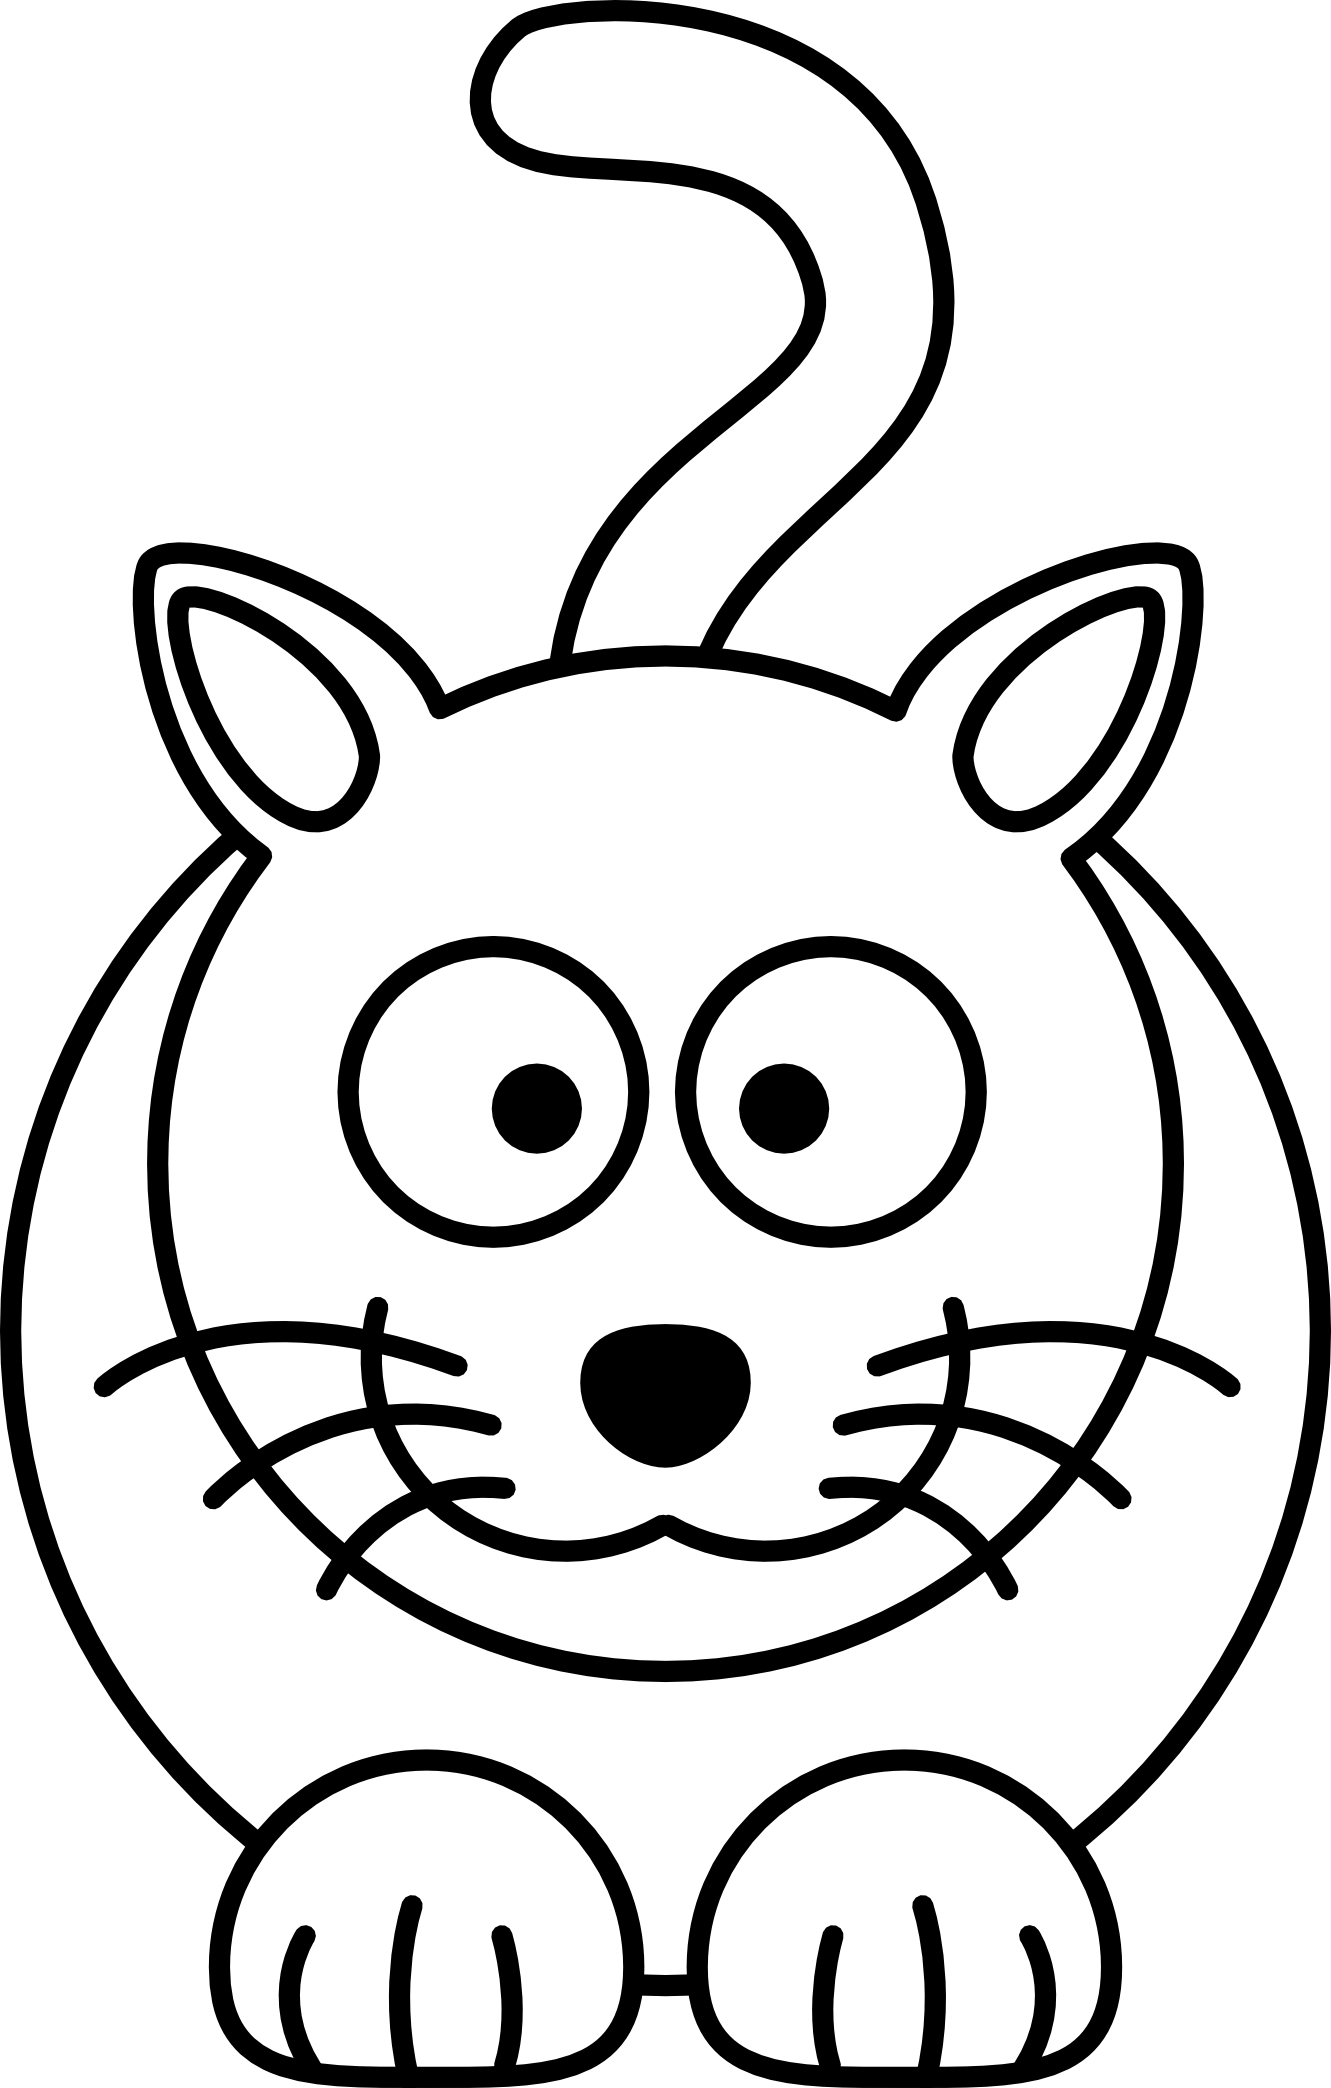 coloring kite images black and white lemmling cartoon cat black white line art coloring book white black coloring images kite and